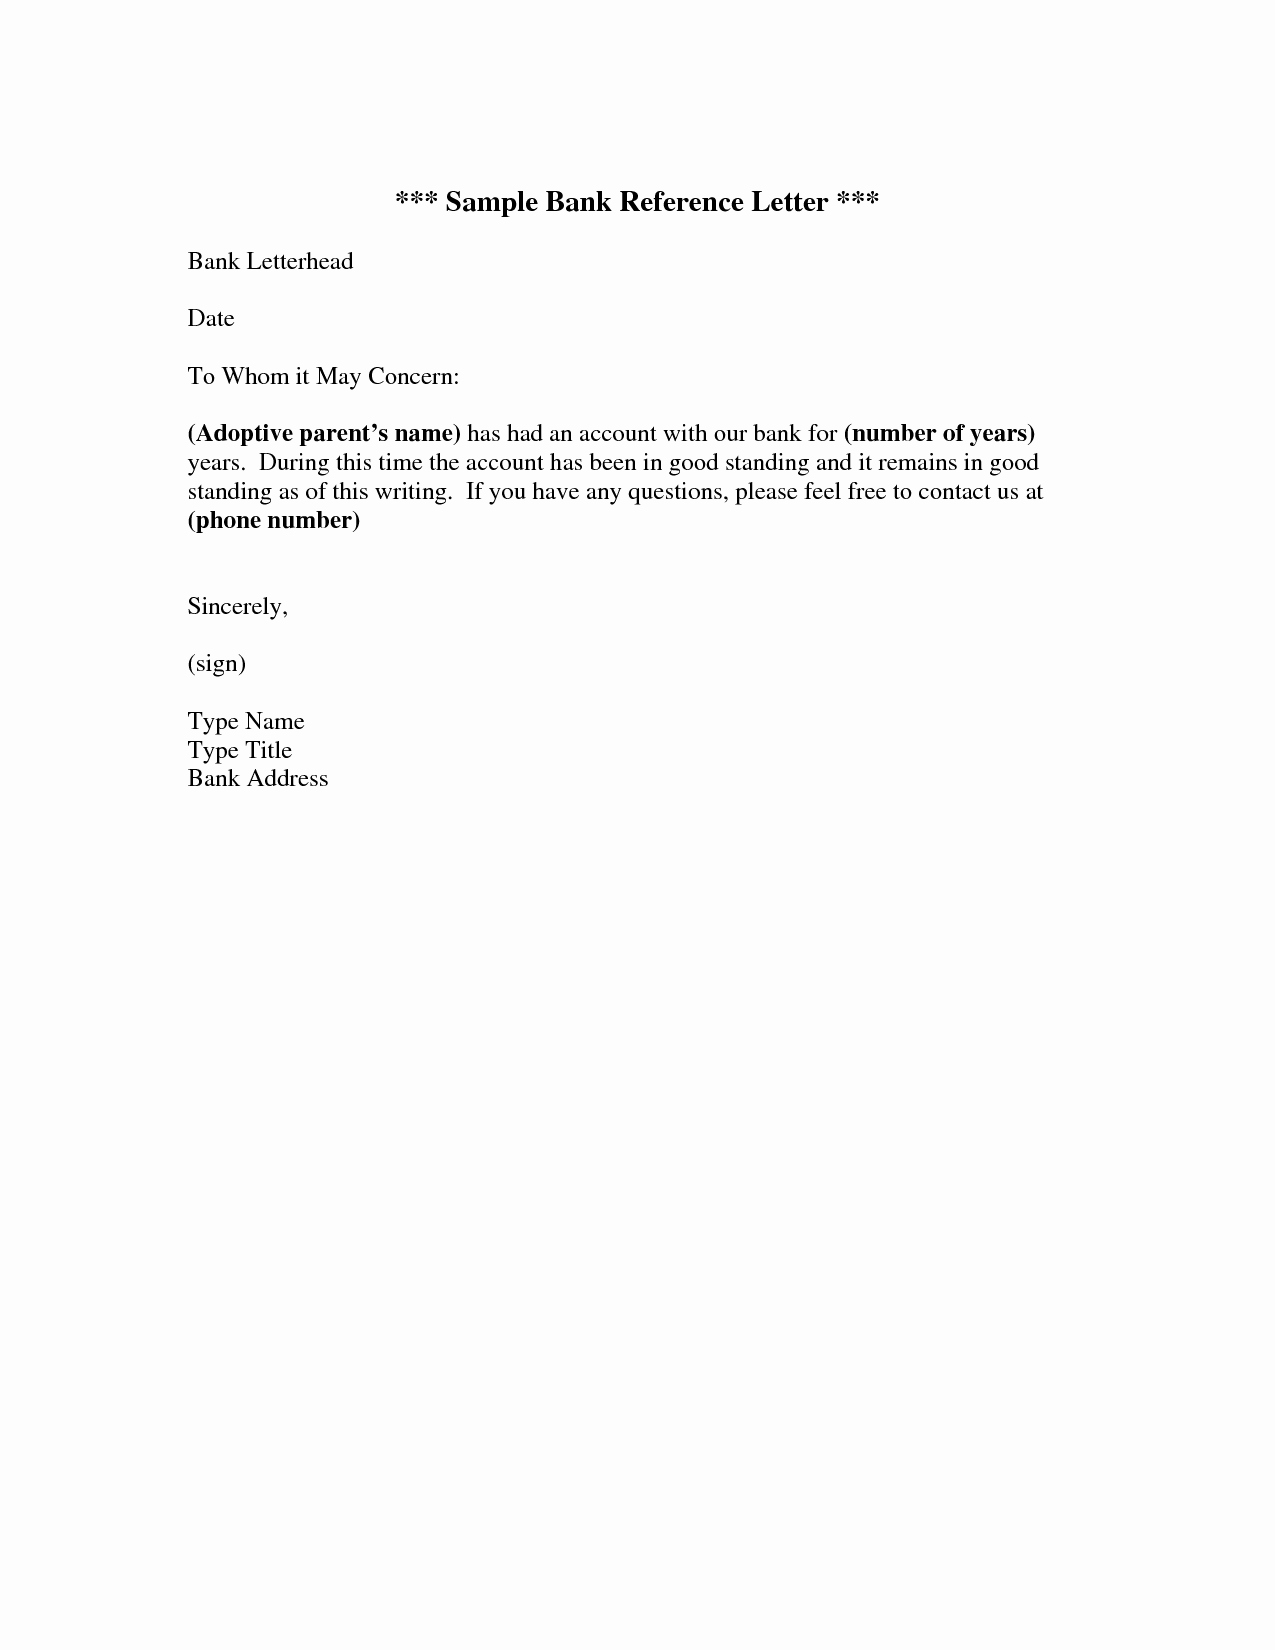 Letter Of Recommendation for Loan Best Of Bank Reference Letter Example Mughals